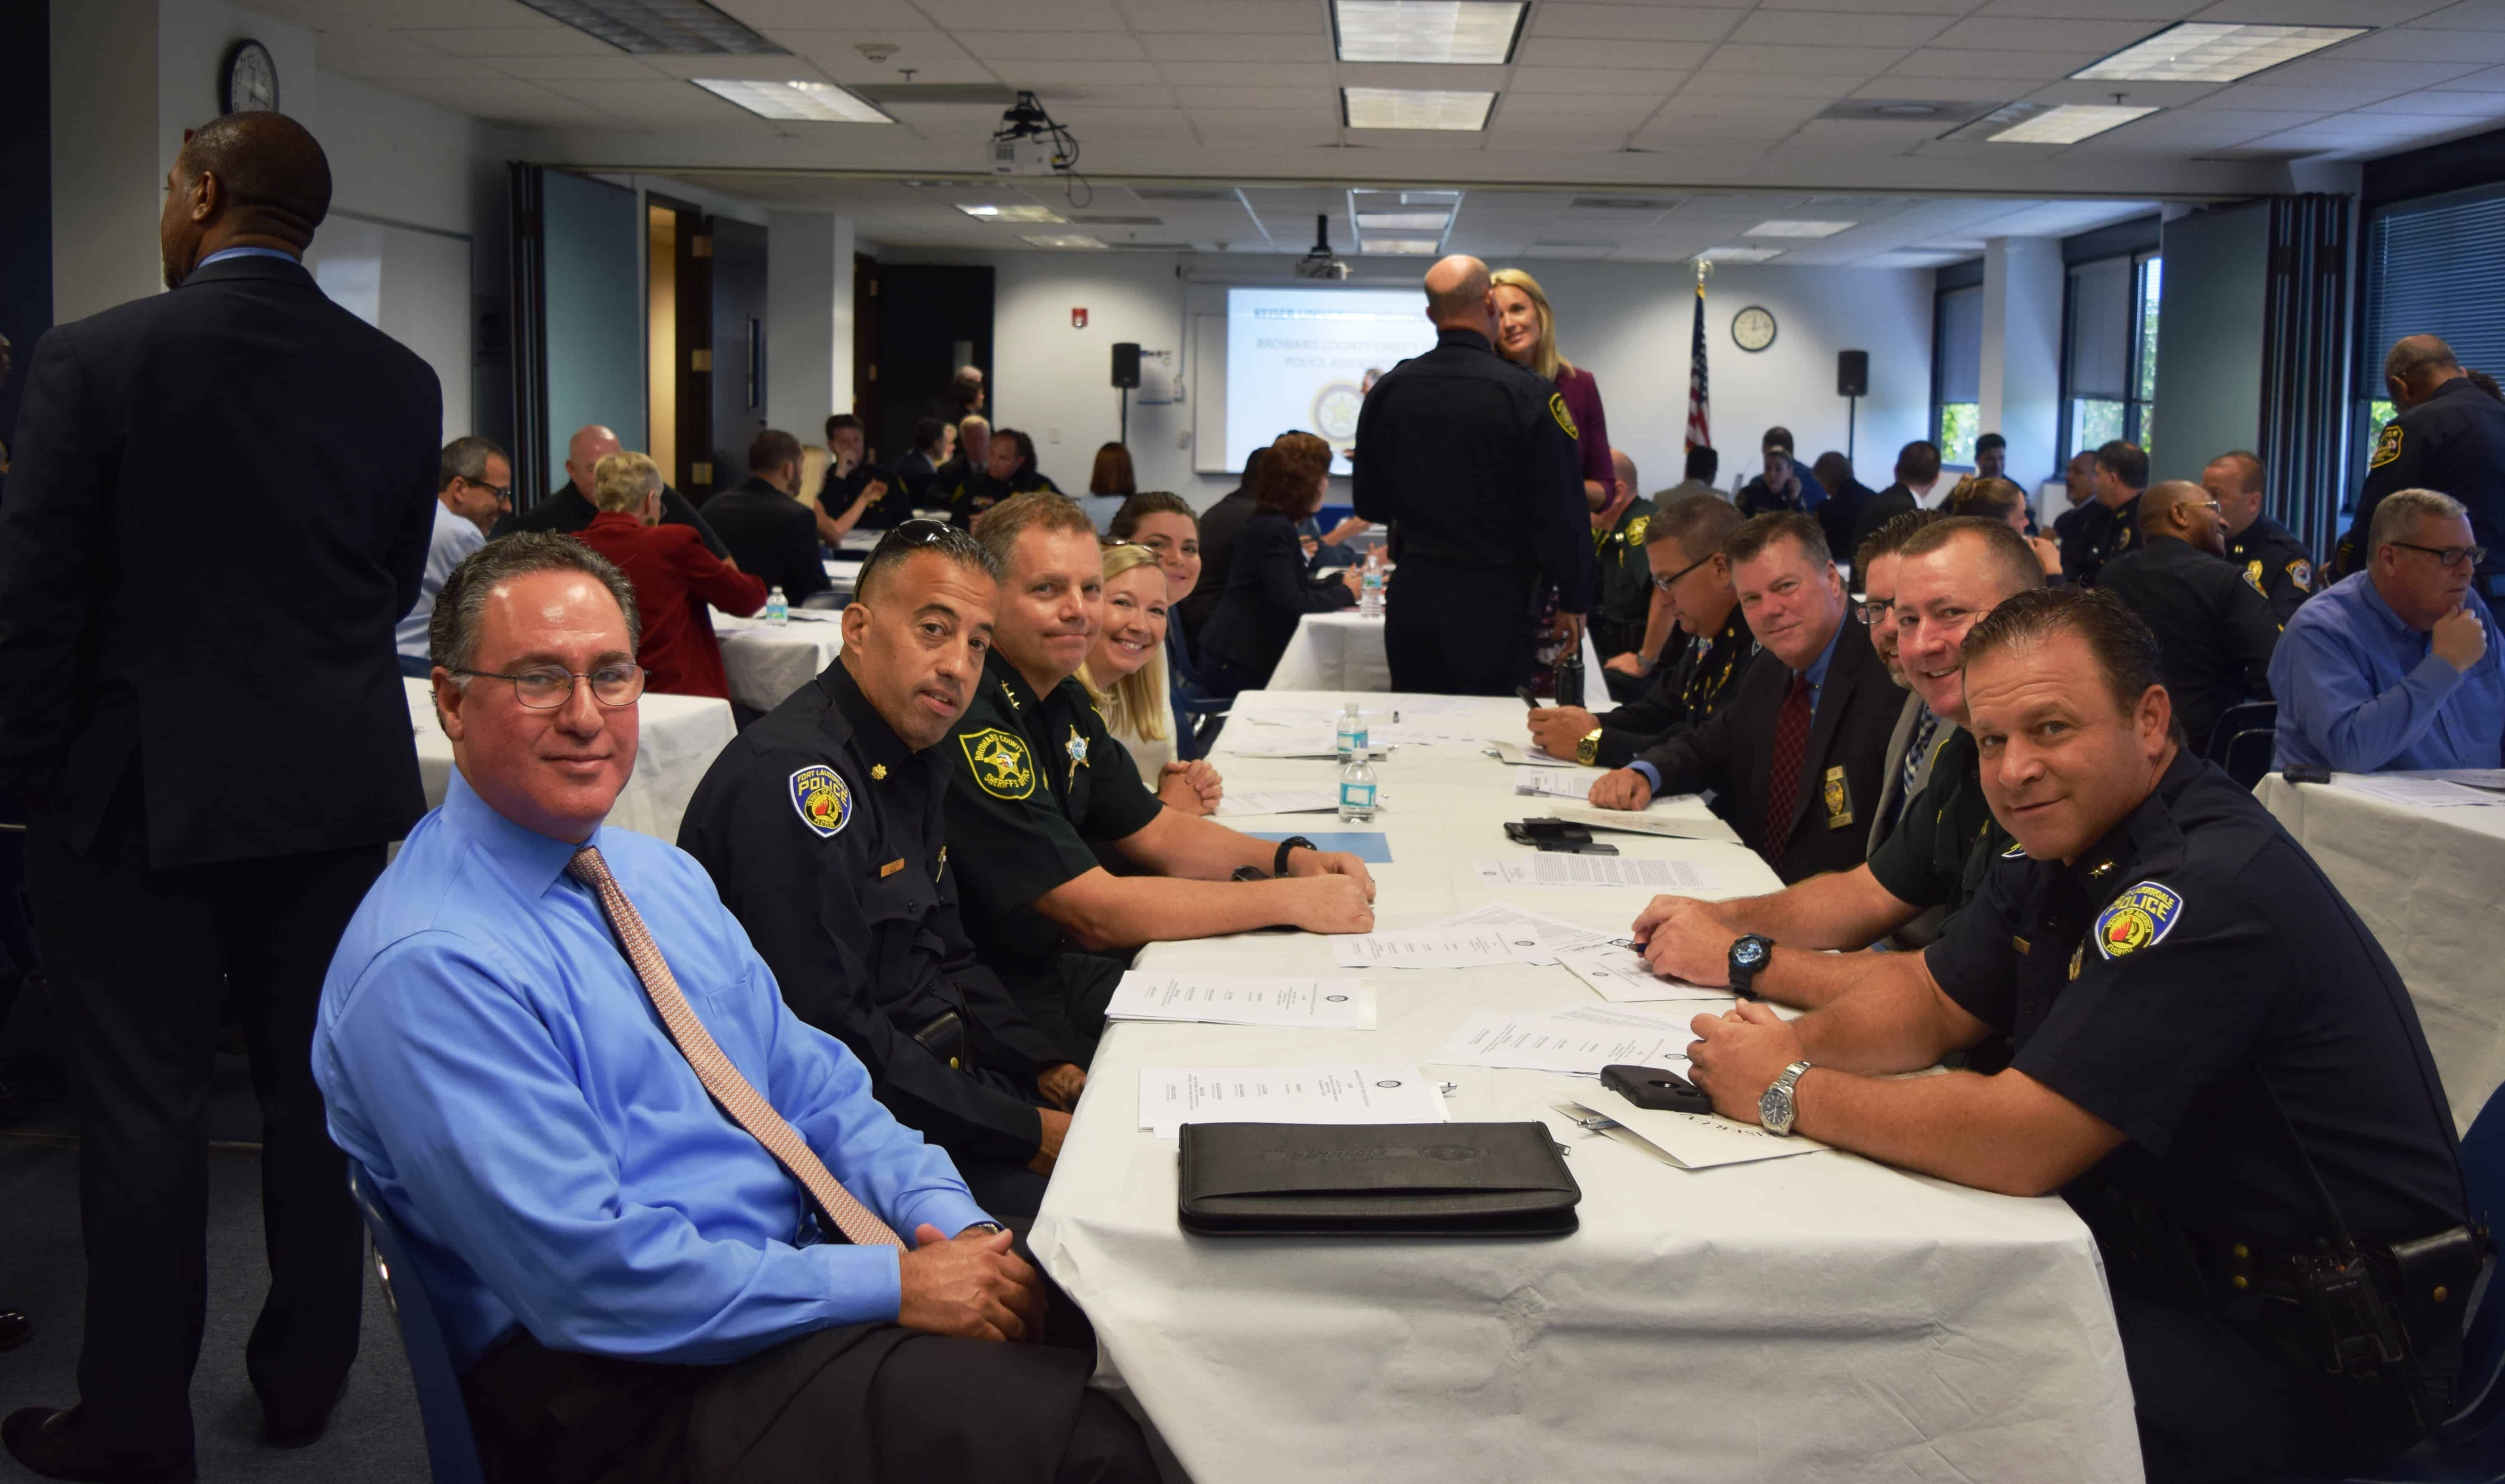 The Ft. Lauderdale Campus Hosts the Broward County Chiefs of Police Association